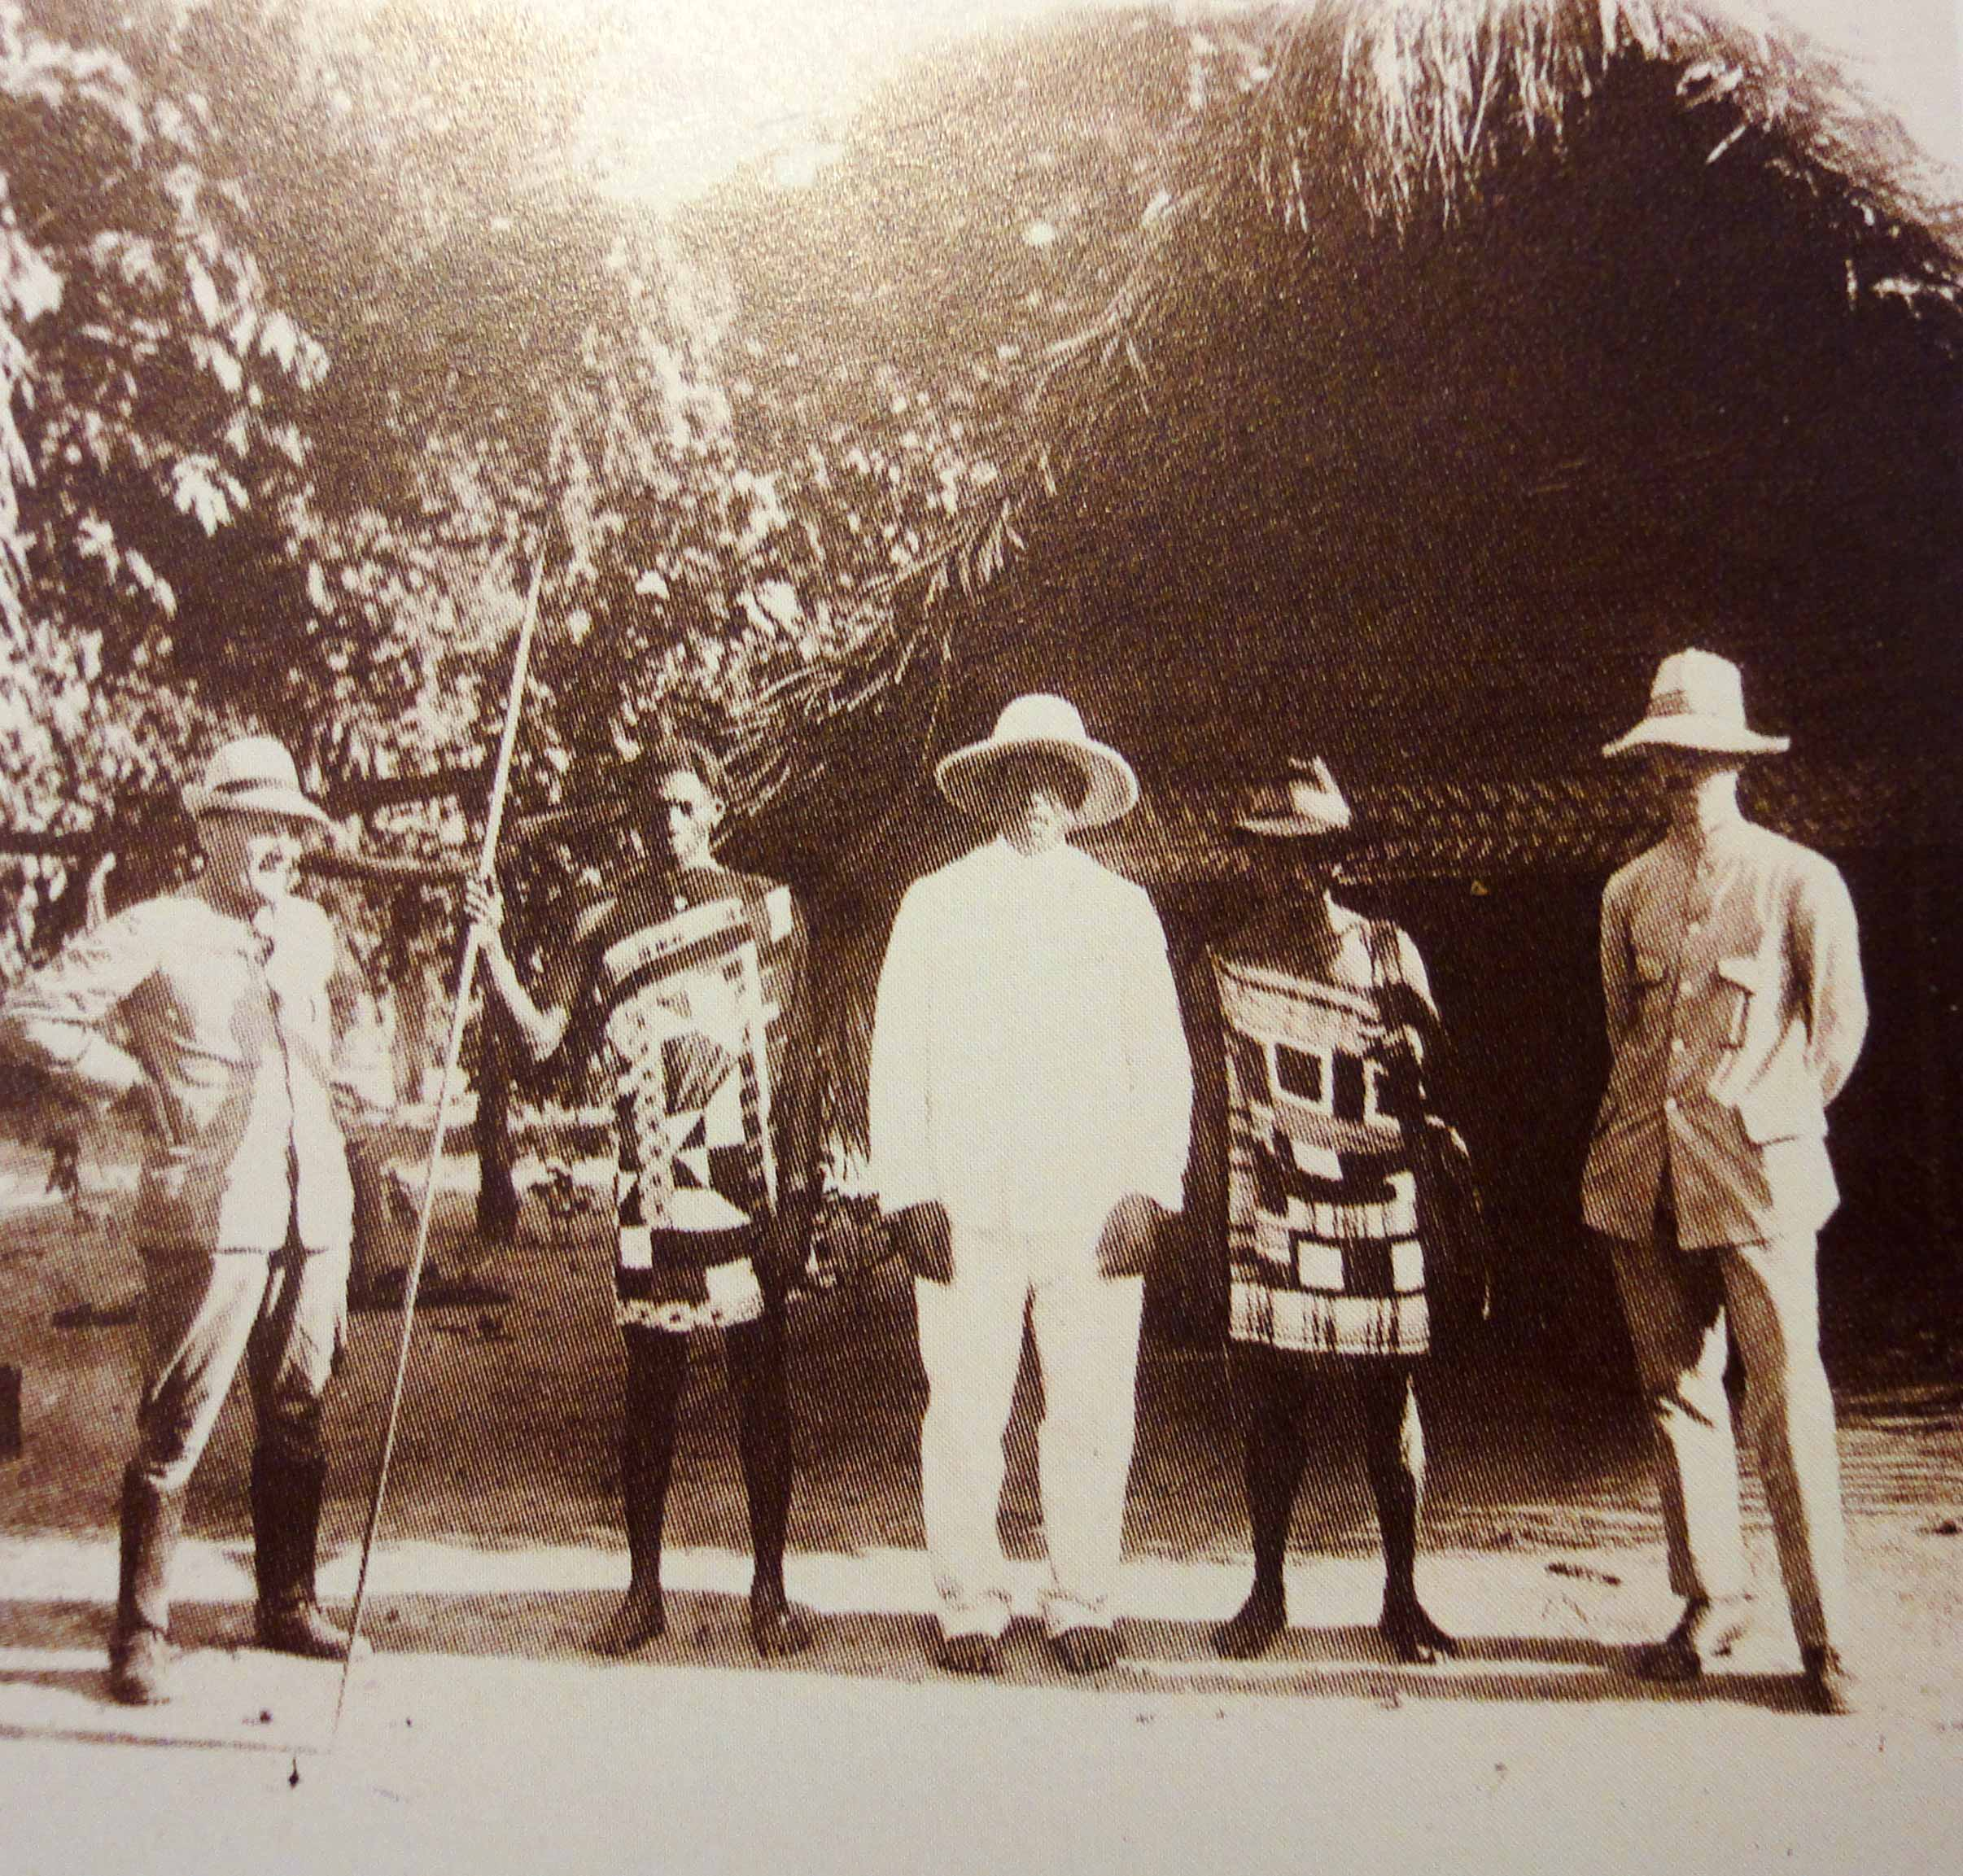 Explorers and their guide in the Suriname Interior, early twentieth century